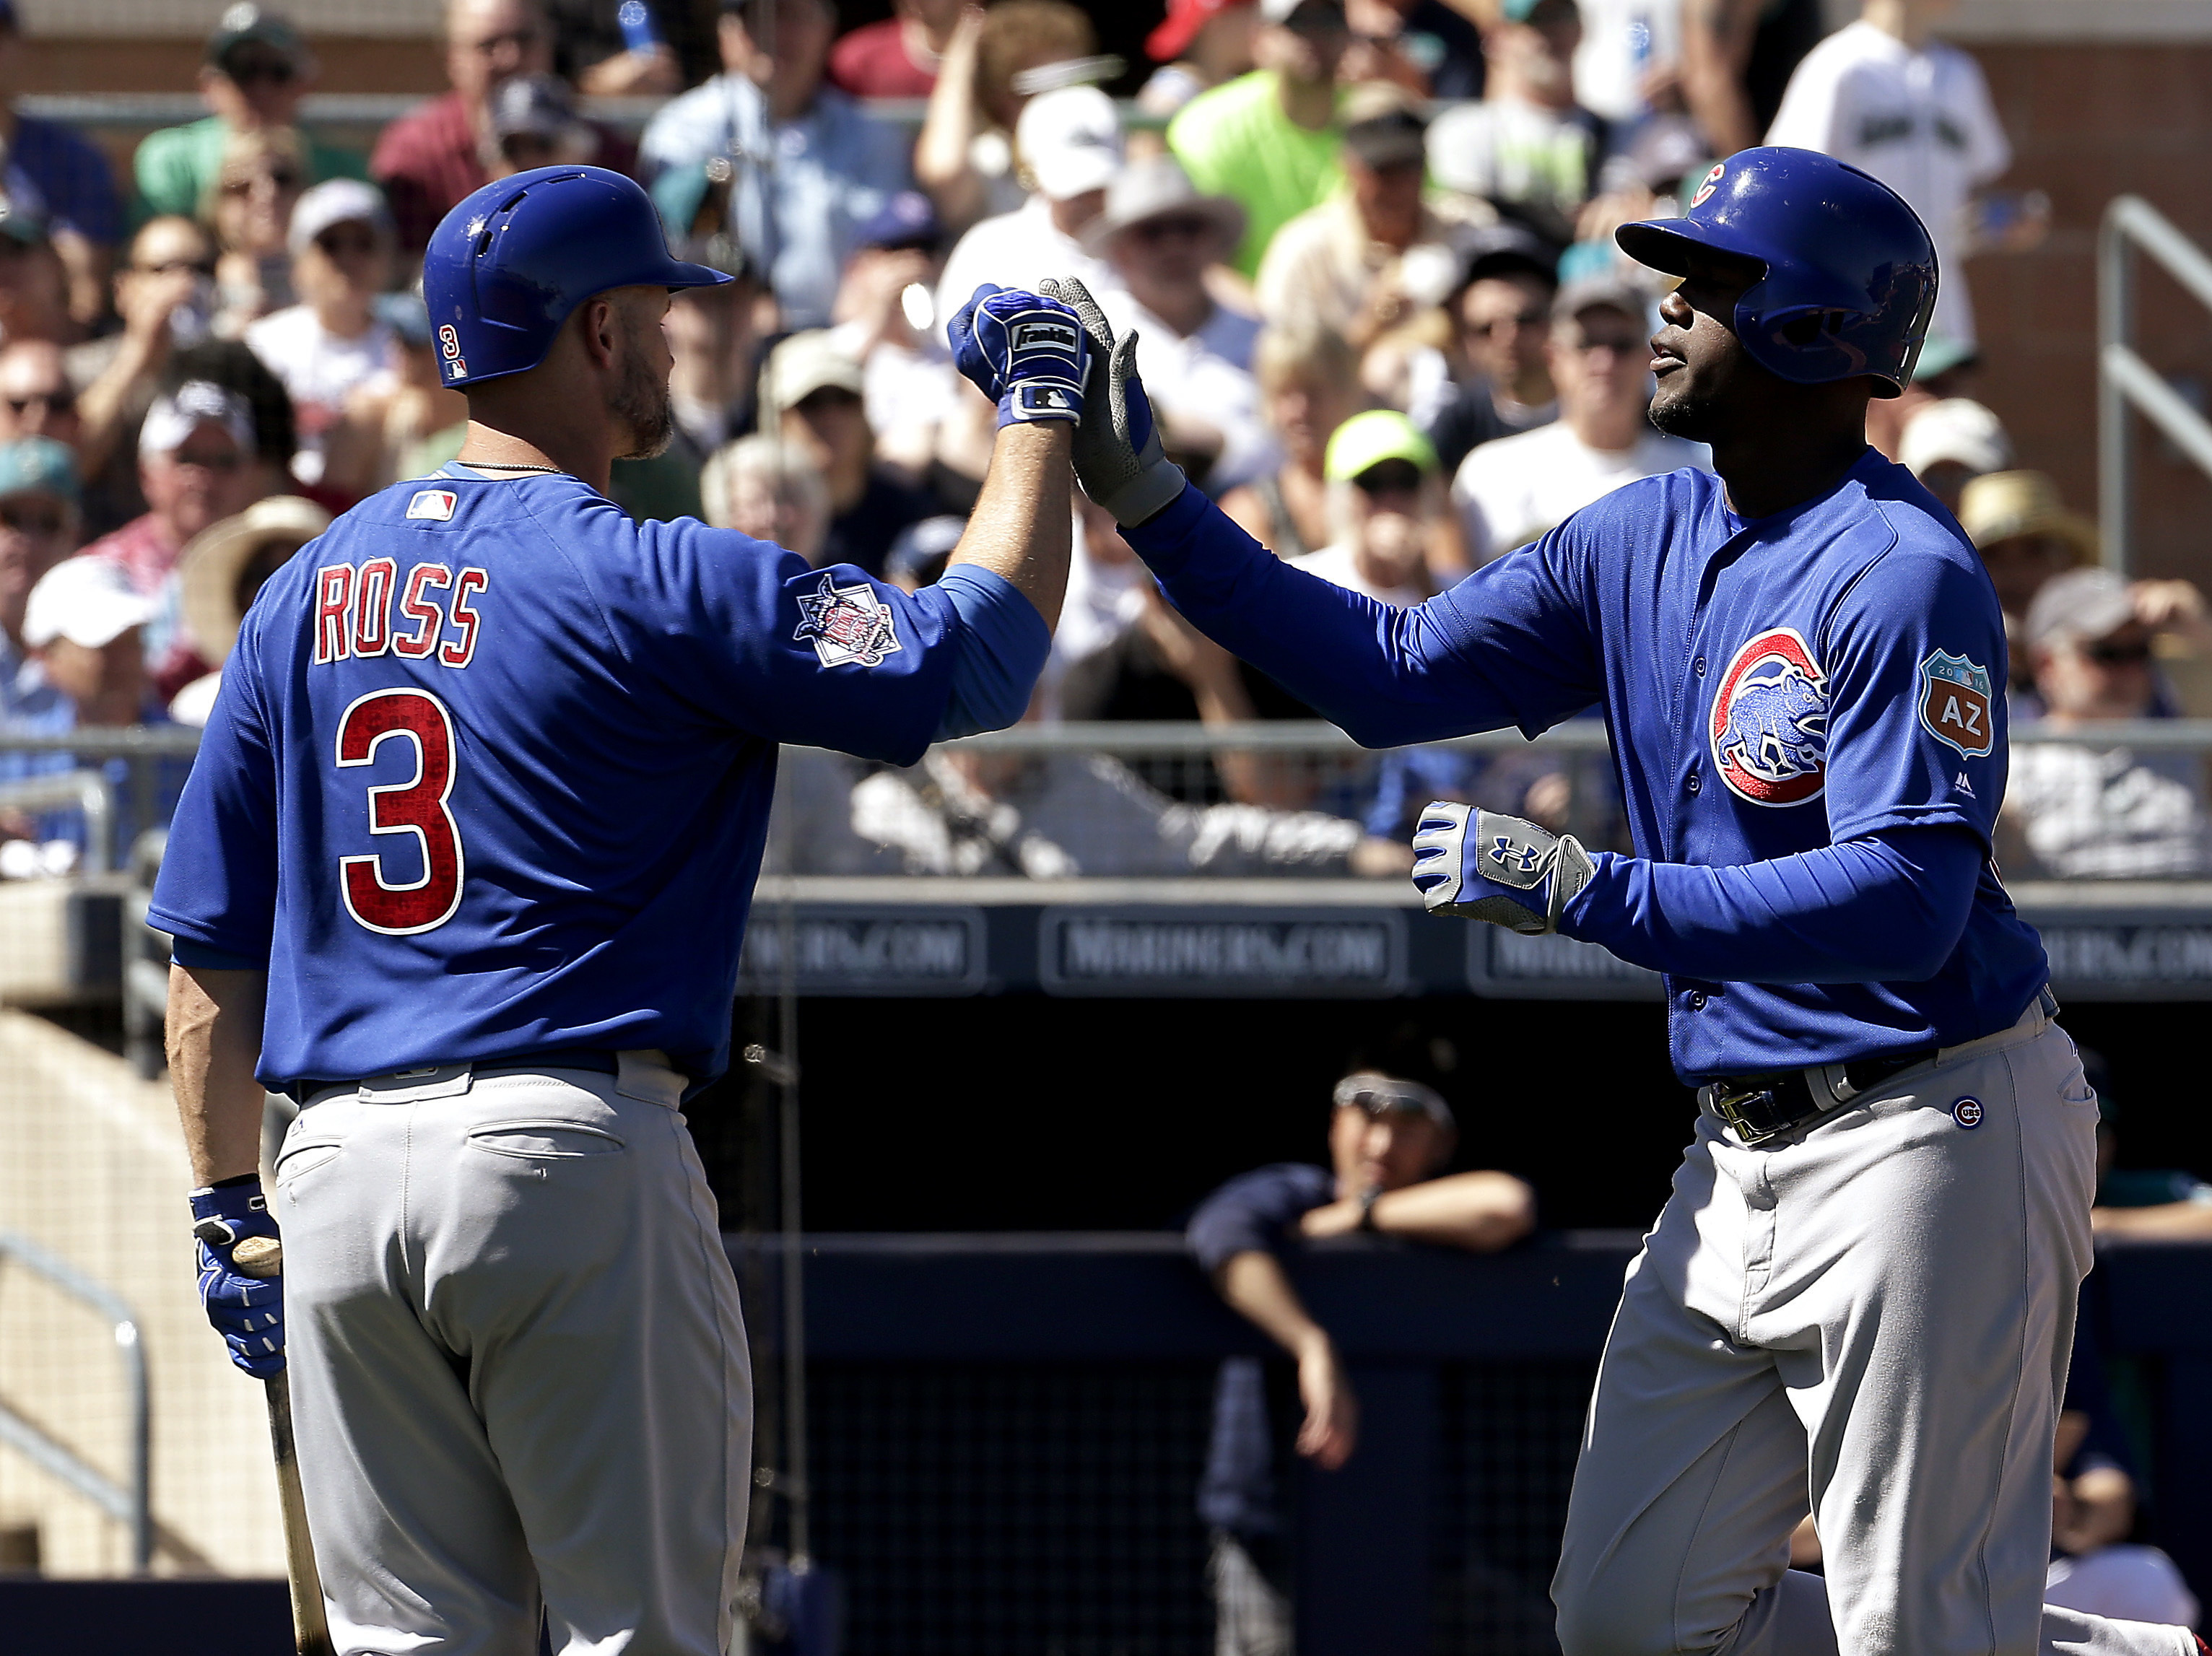 Chicago Cubs' Jorge Soler, right, celebrates with David Ross (3) after hitting a solo home run during the second inning of a spring training baseball game against the Seattle Mariners on Thursday, March 10, 2016, in Peoria, Ariz. (AP Photo/Charlie Riedel)